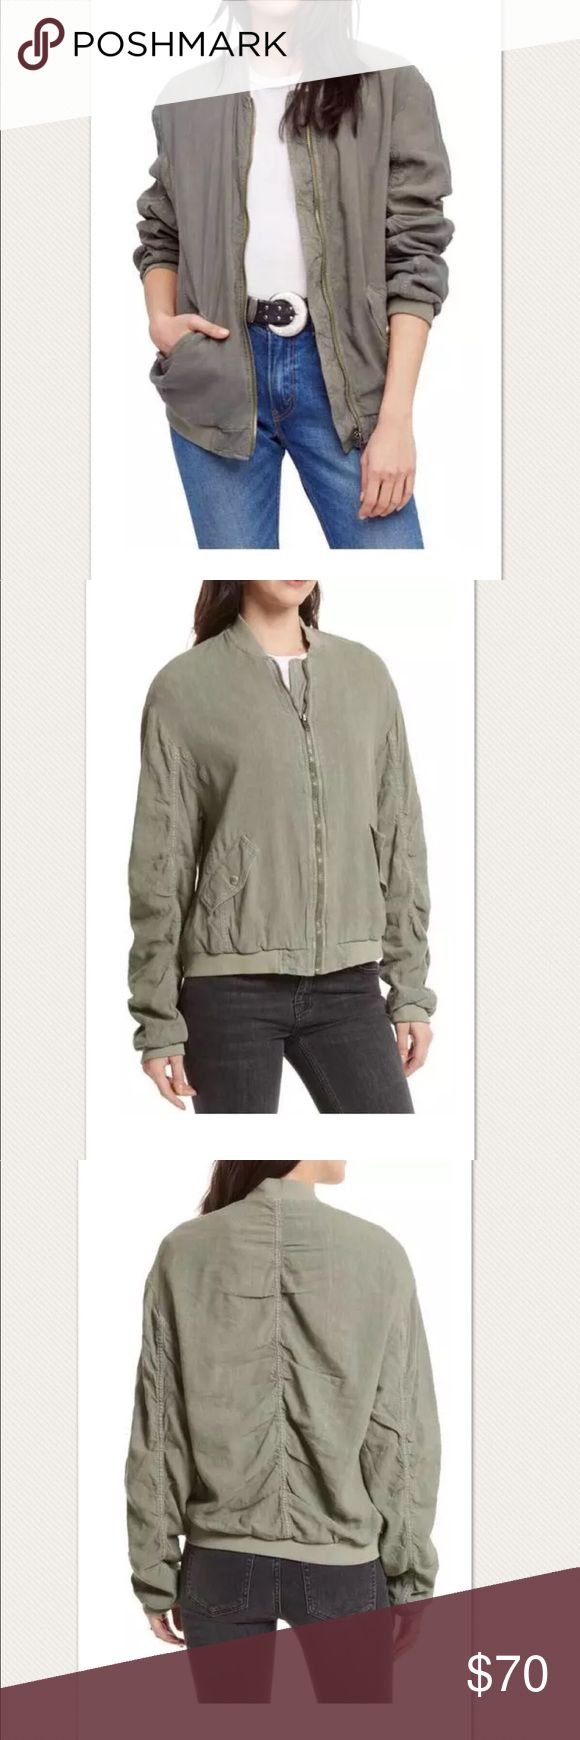 "$128 NWT Free People Ruched Linen Bomber Jacket New with tags. Retails for $128 + Tax  From Nordstrom: Over sized  Cut from a lightweight blend of linen and rayon, this breezy bomber jacket has a whimsical vibe with its gracefully shirred detail in back. Worn in look Front zip closure Long sleeves Front button-flap patch pockets Lined 56% linen, 44% rayon Size XS  Measures approximately: total length 25"" bust across 23""  High end department store shelf pull-May have had customer contact…"